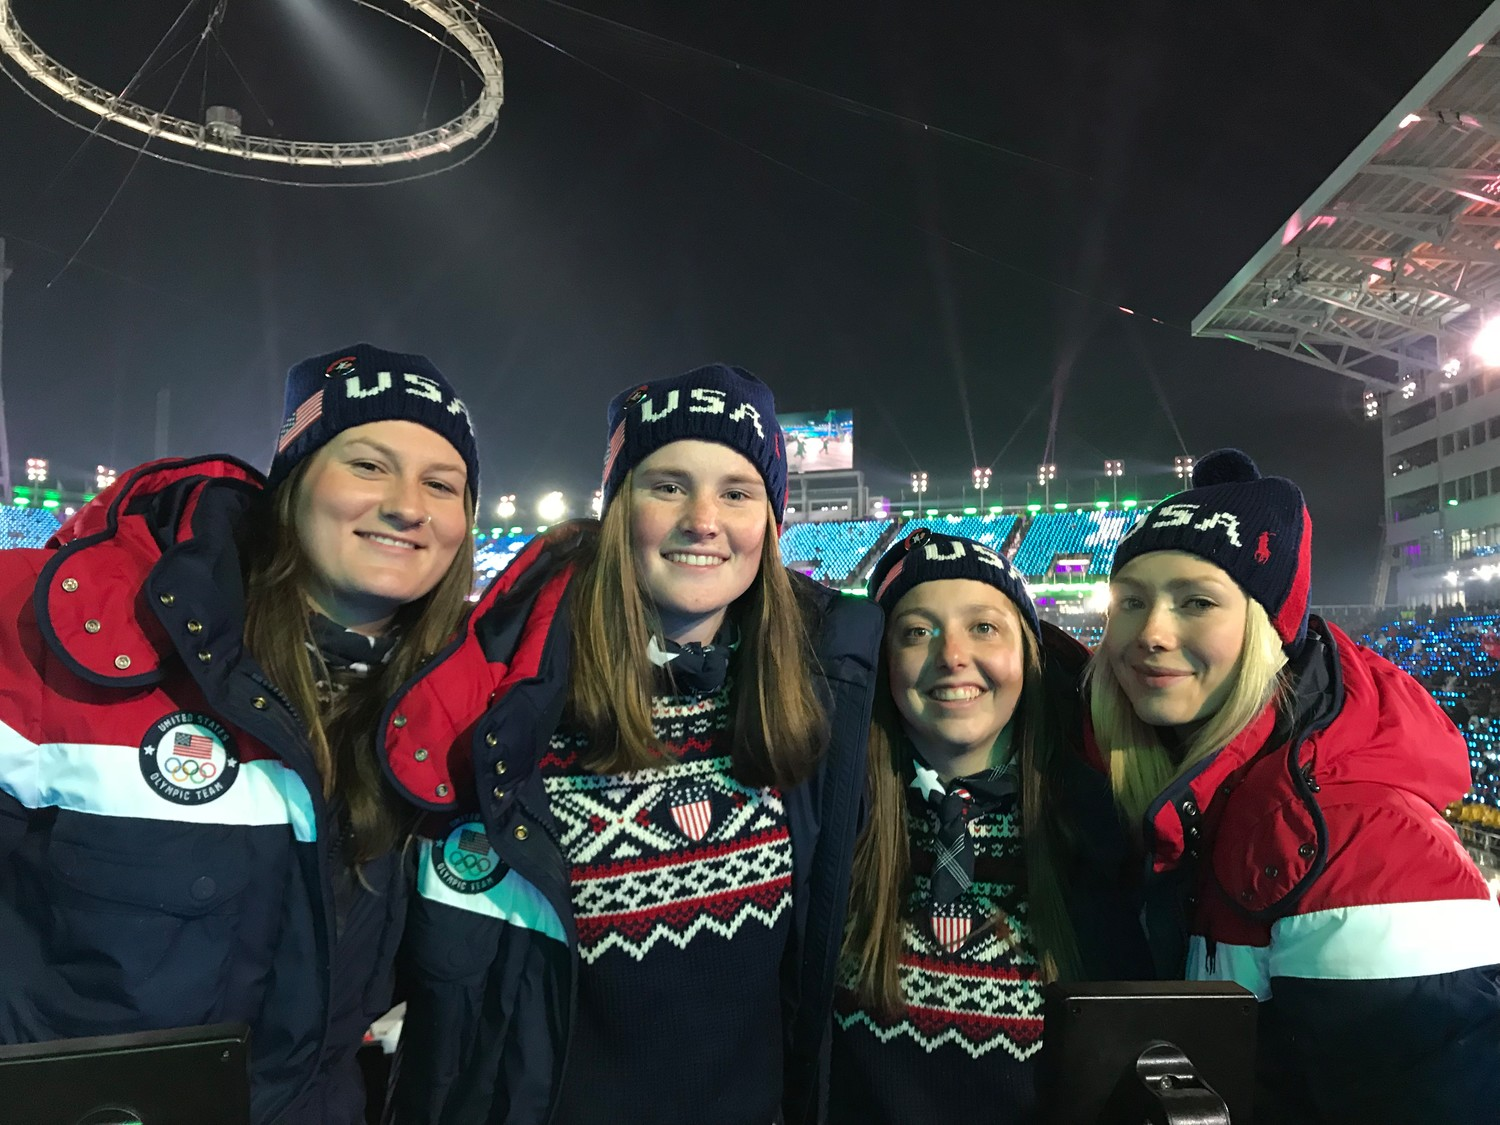 Devin Logan, left, with Caroline Clair, Darian Stevens and Maggie Voisin of the 2018 U.S. Women's slopestyle team at the Winter Olympics opening ceremony last week.  Logan won the inaugural silver medal in the sport  at the 2014 Olympics in Sochi, Russia.